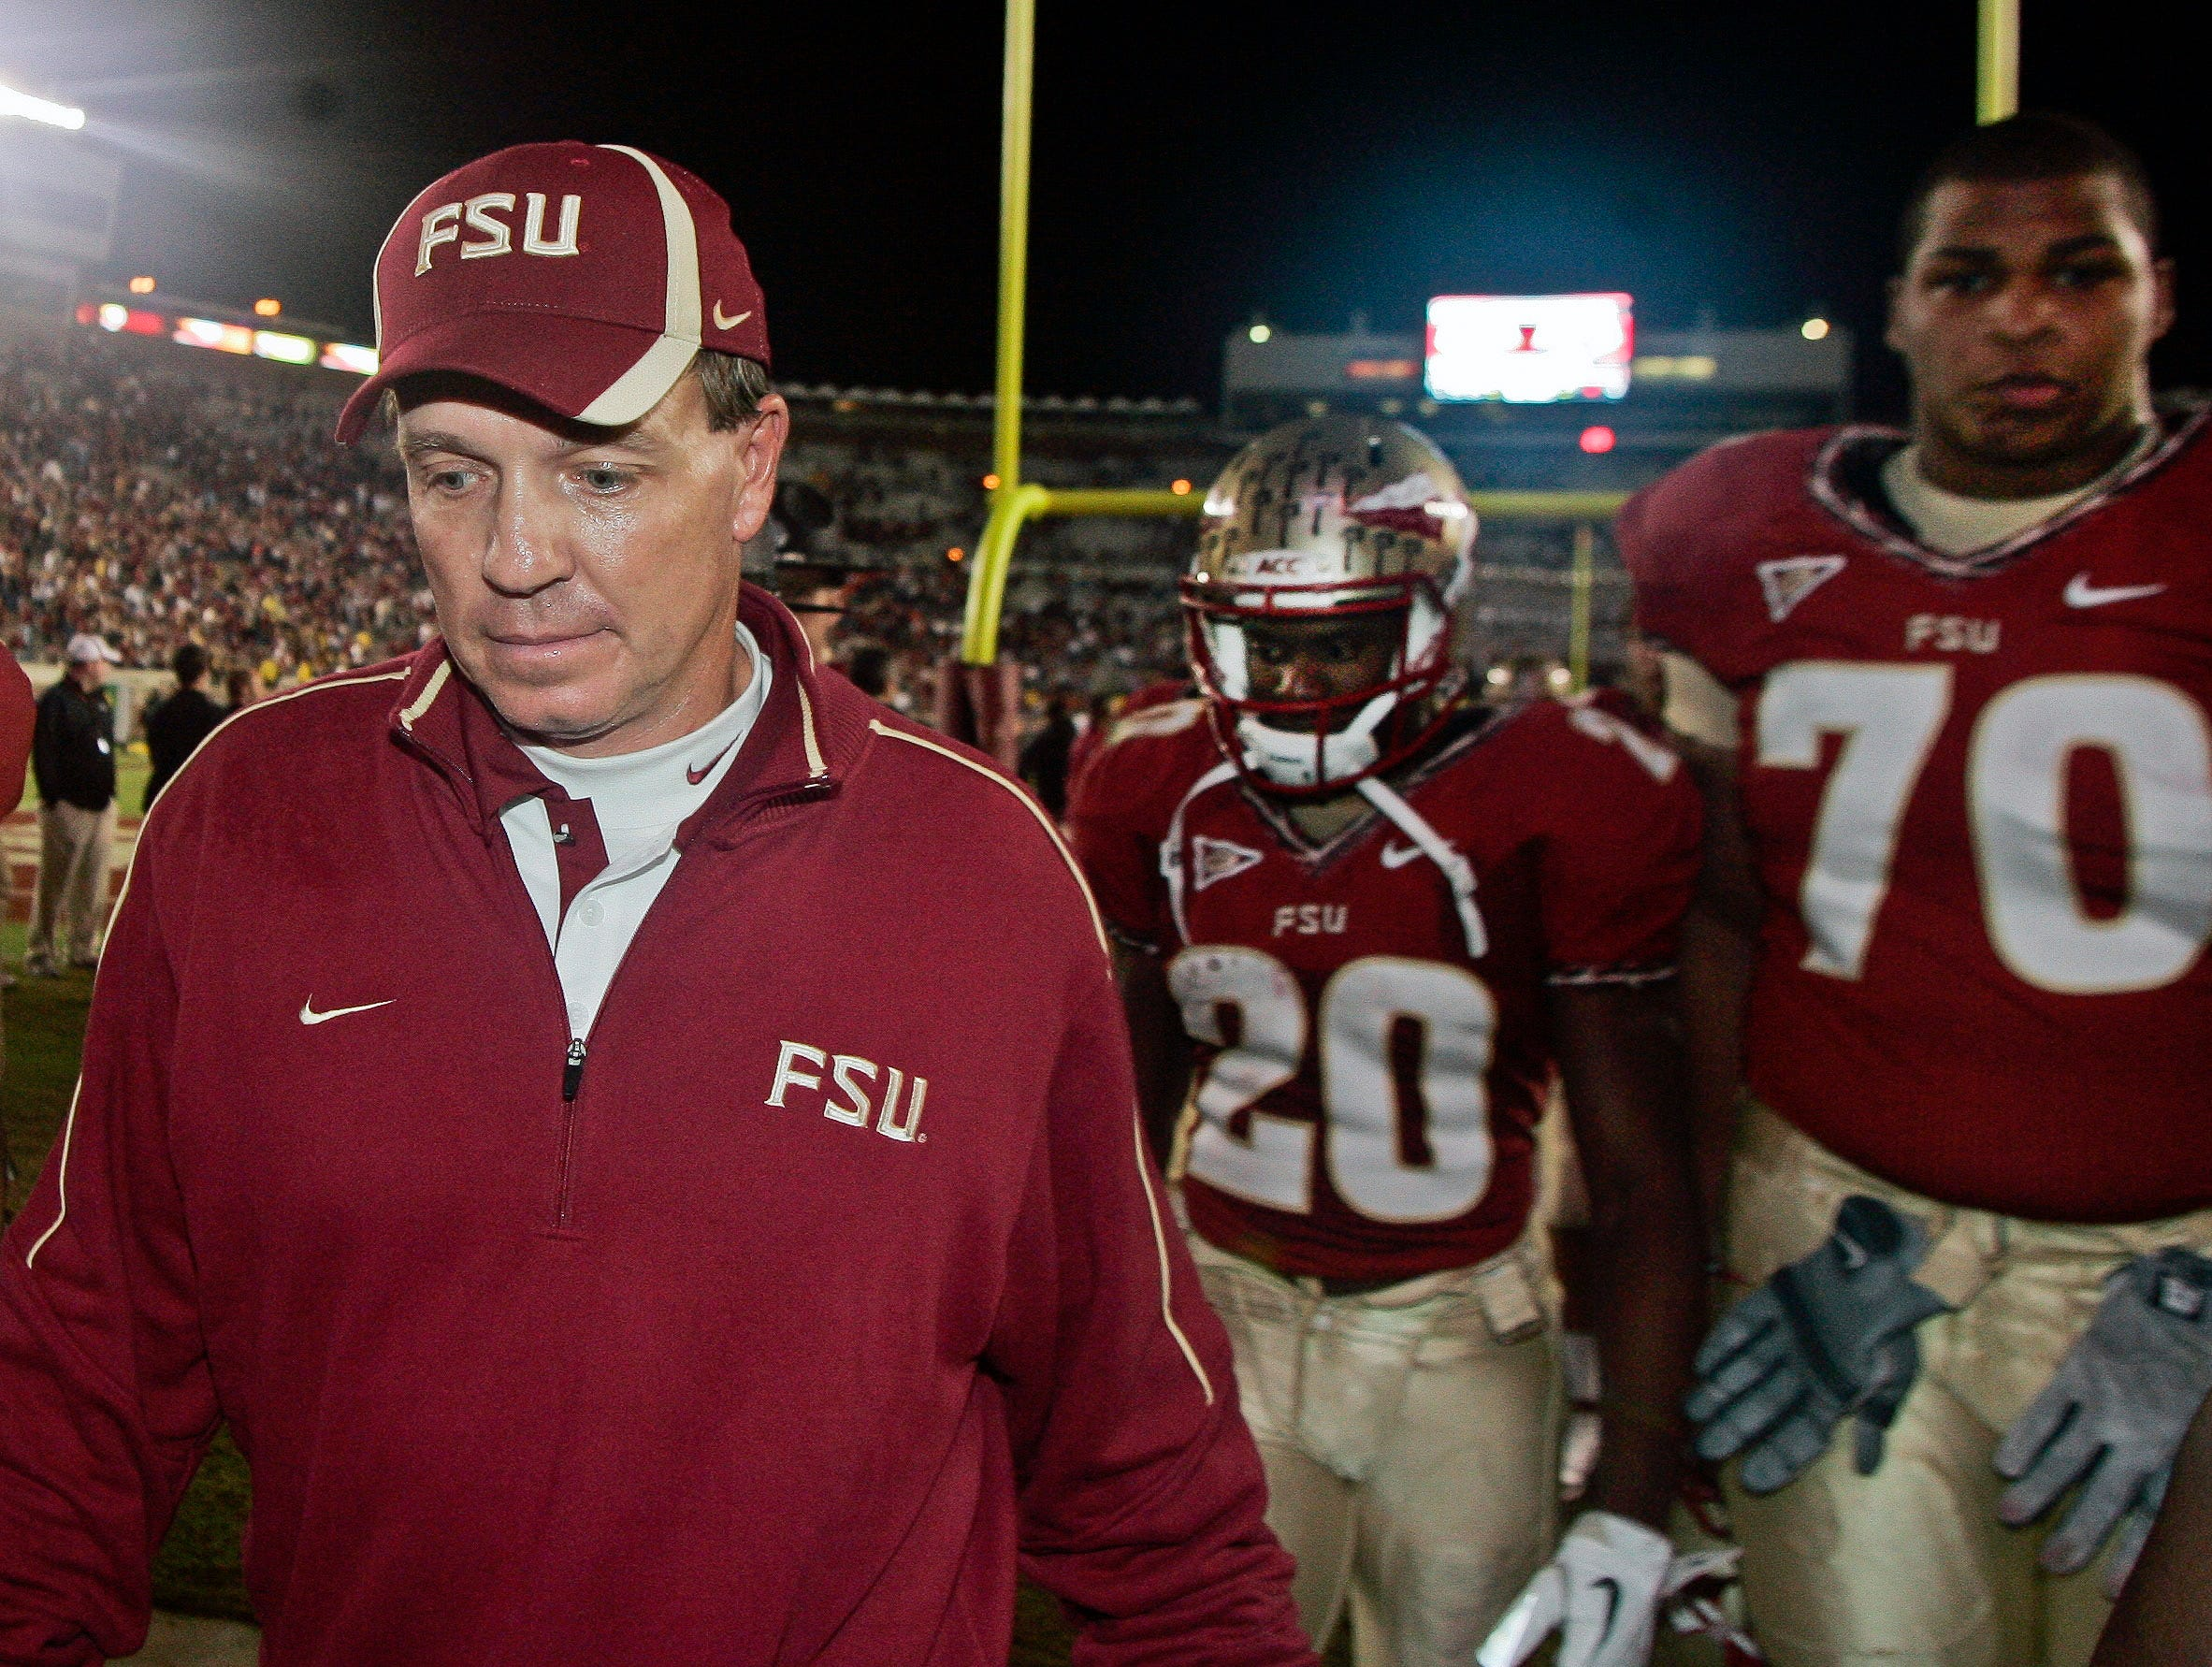 Nov 19, 2011; Tallahassee, FL, USA; Florida State Seminoles head coach Jimbo Fisher and safety Lamarcus Joyner (20) and offensive lineman Josue Matias (70) walk out after the game against the Virginia Cavaliers at Doak Campbell Stadium. Virginia won 14-13. Mandatory Credit: Phil Sears-USA TODAY Sports